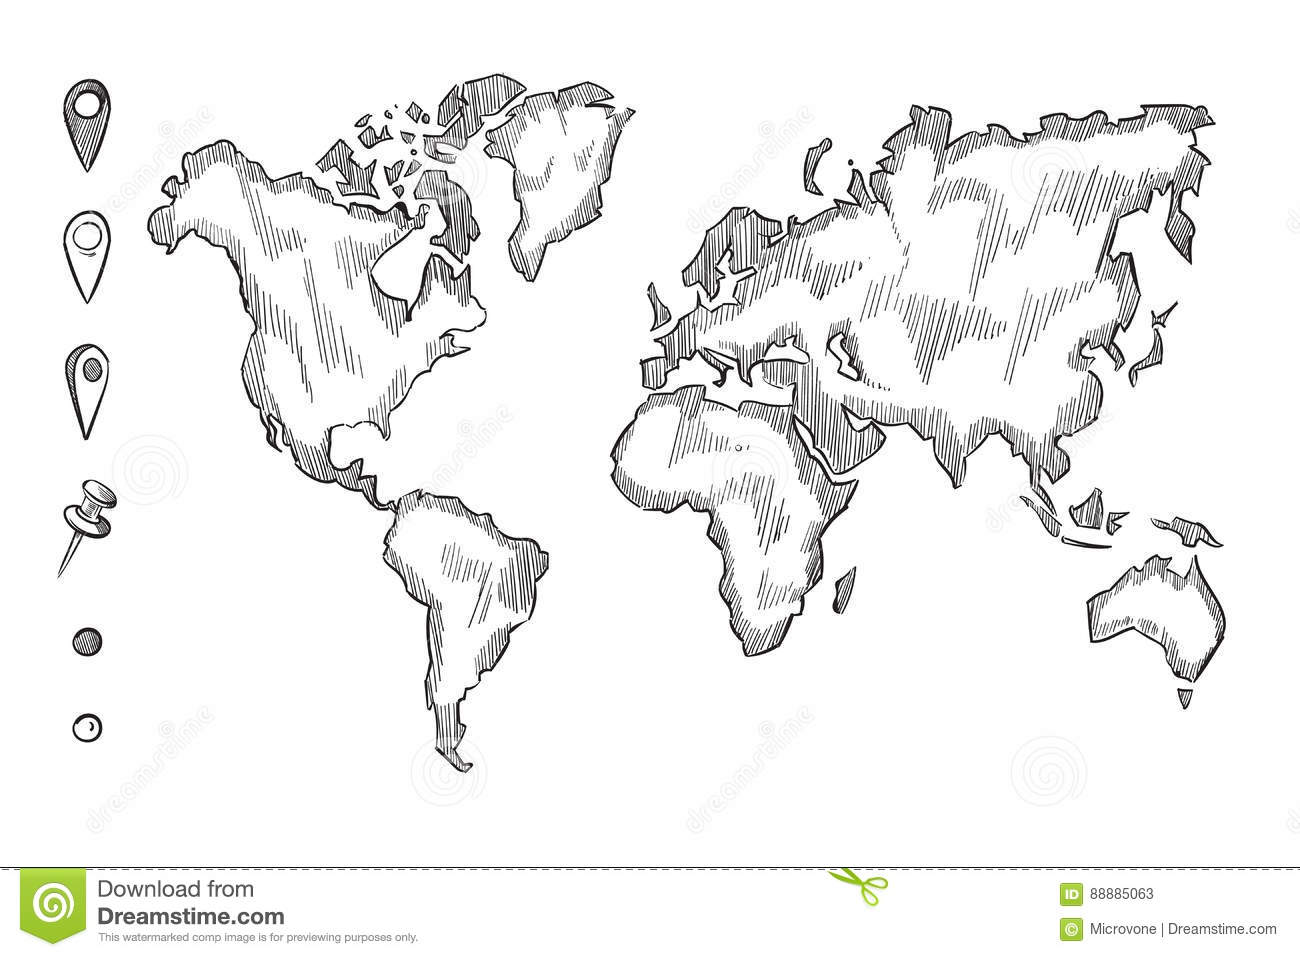 Hand drawn rough sketch world map with doodle pins stock vector hand drawn rough sketch world map with doodle pins gumiabroncs Images